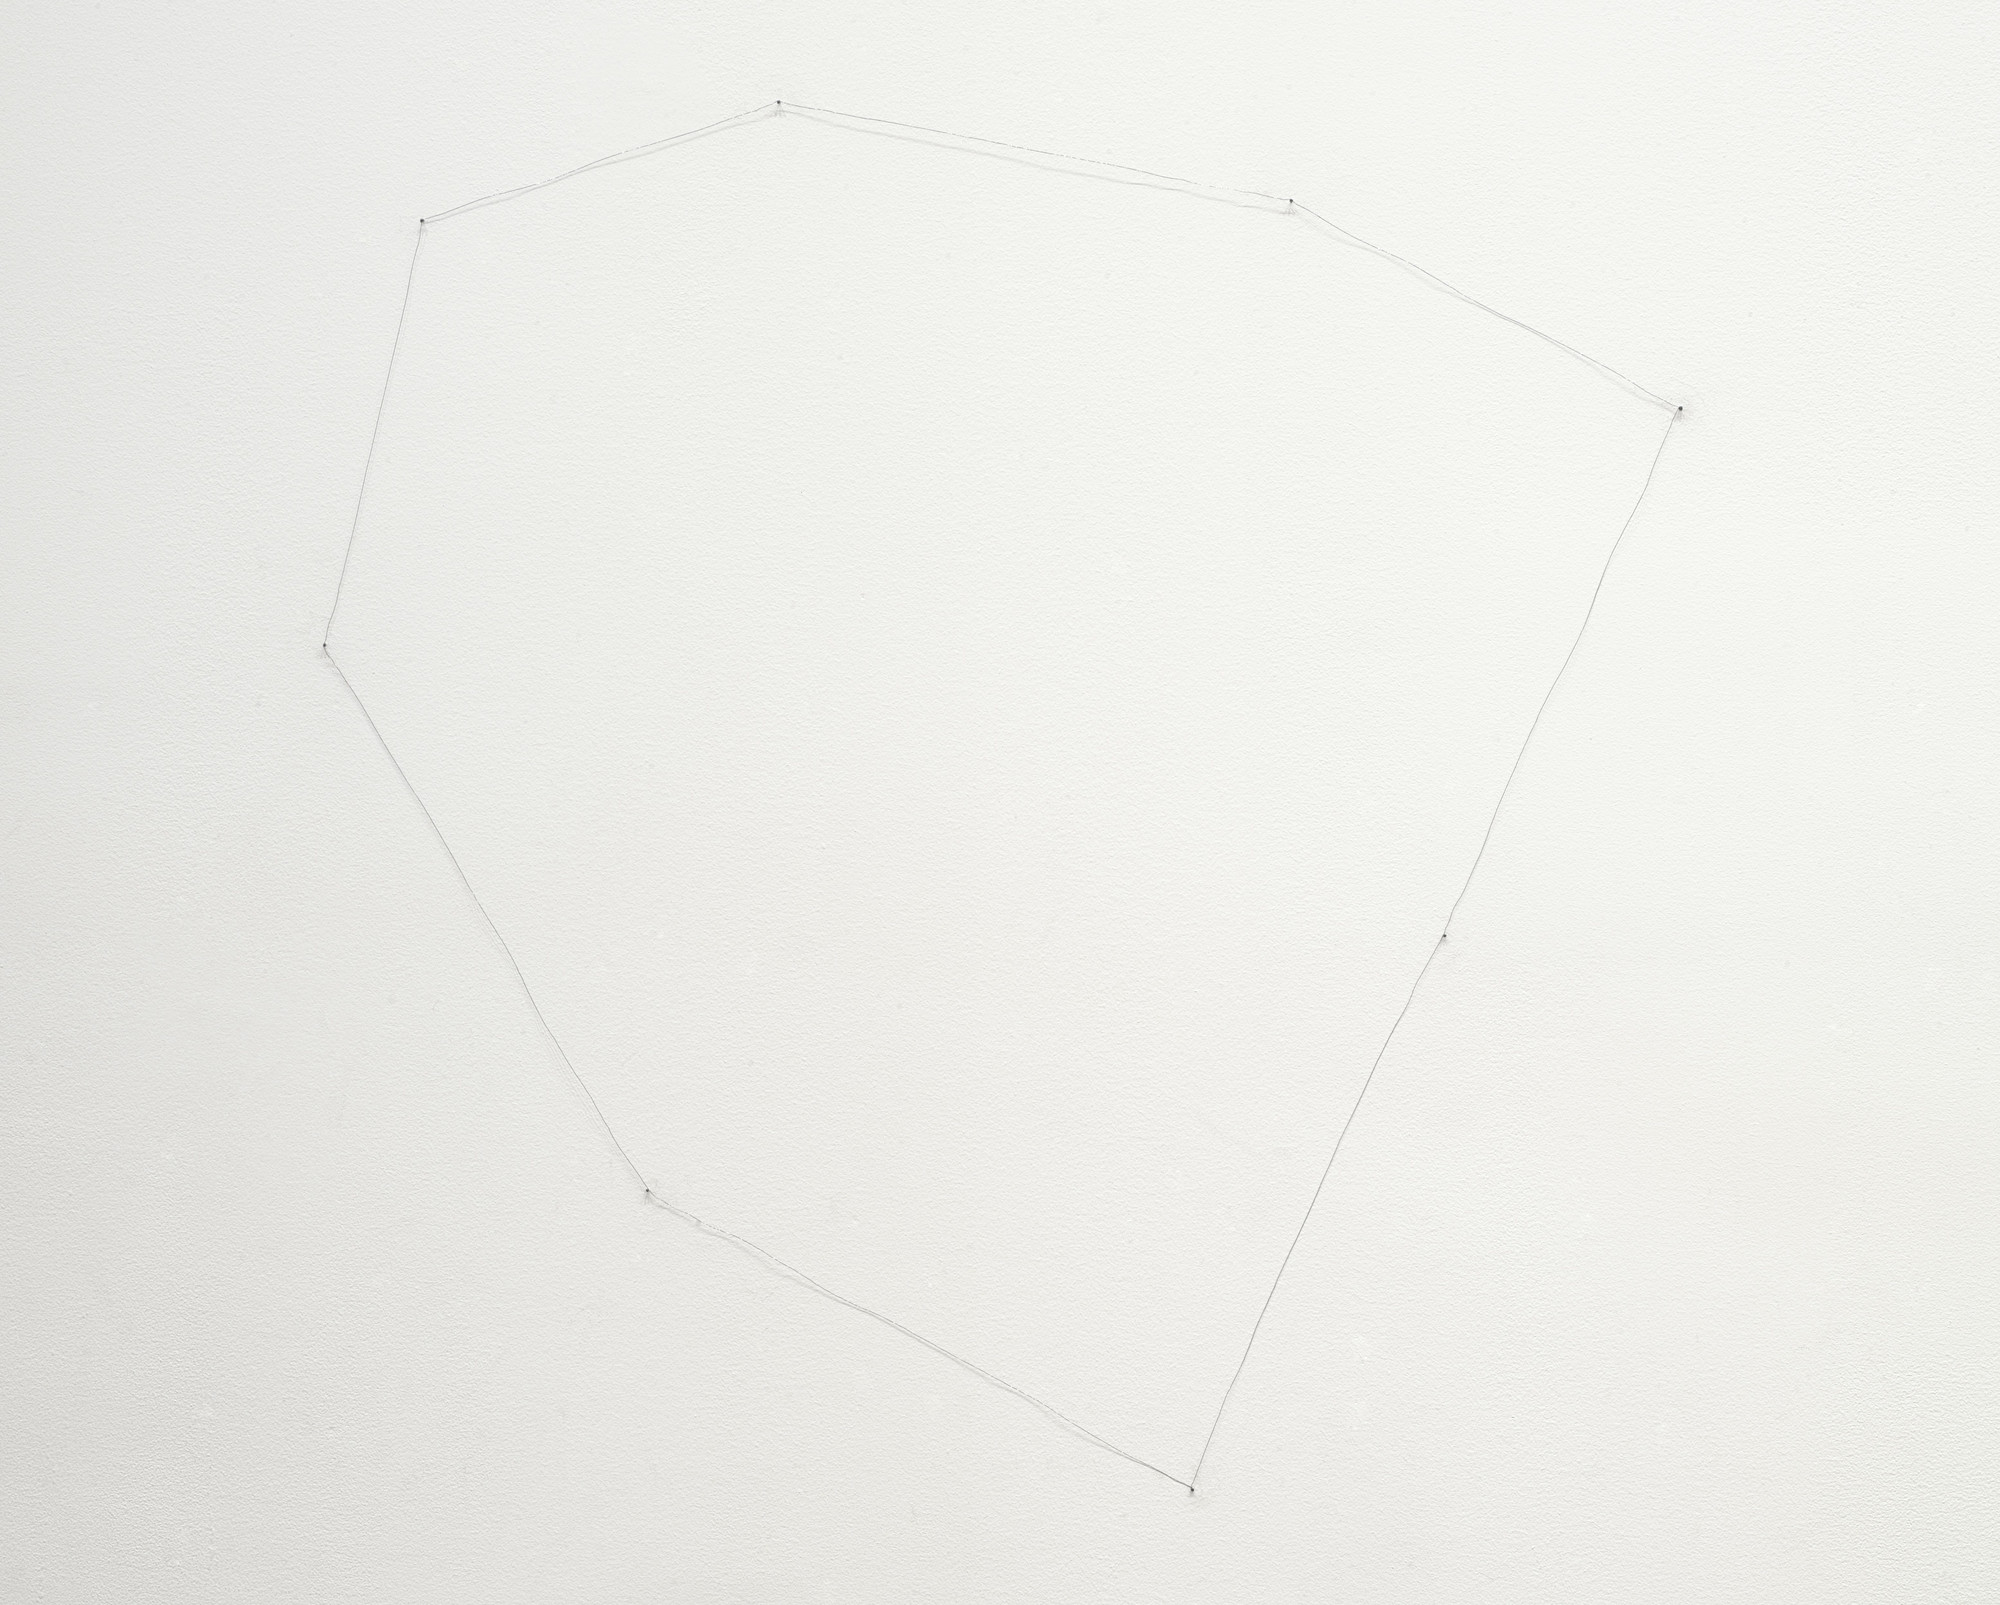 Richard Tuttle. 12th Wire Octagonal. 1971